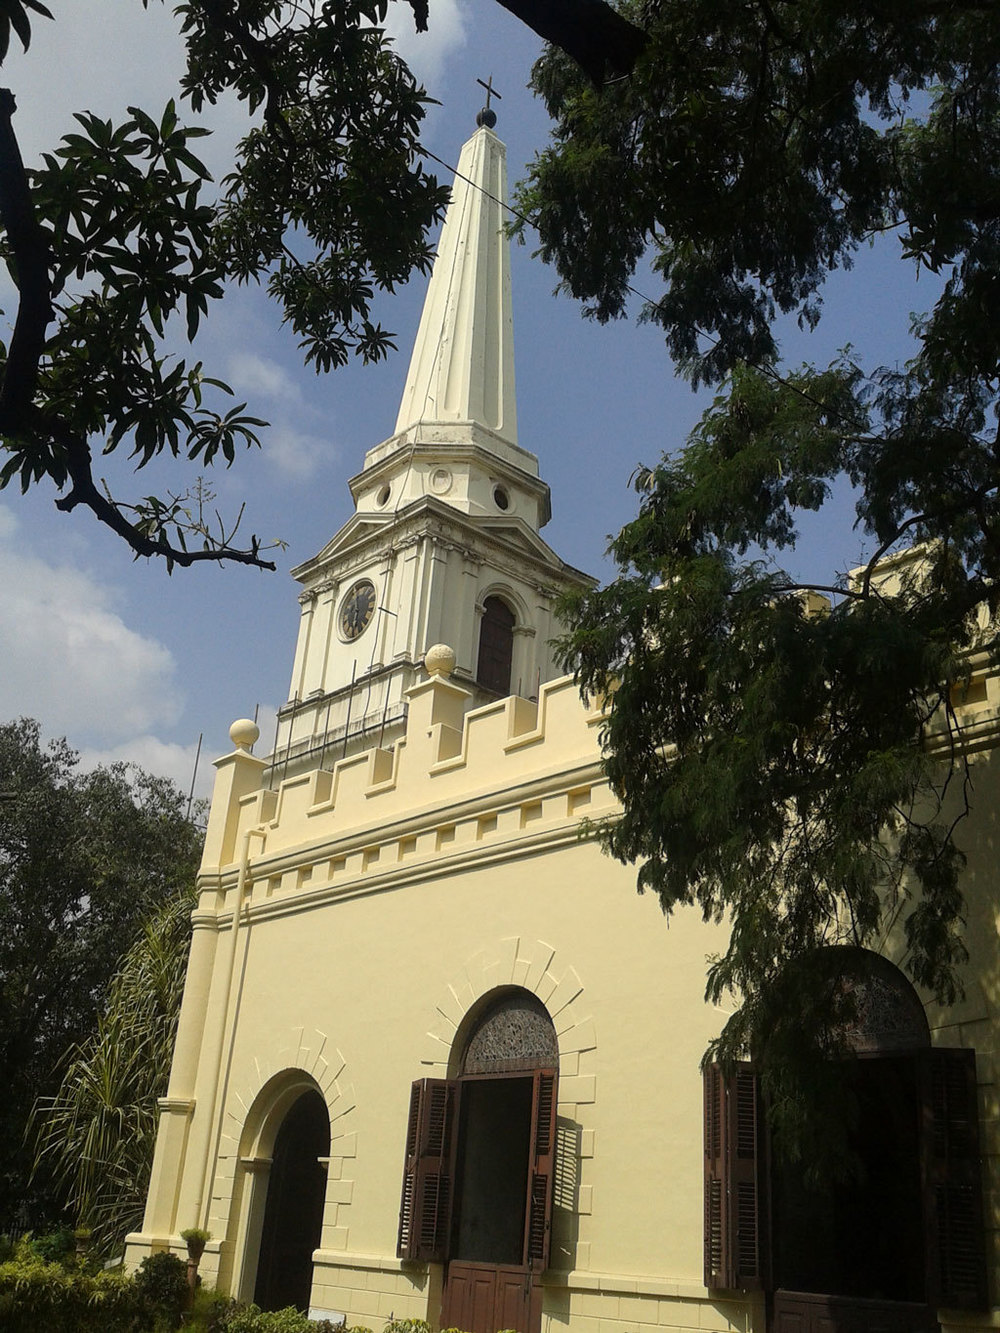 St. Mary's Church, Fort St. George, Chennai Photo credit:  R Muthusamy